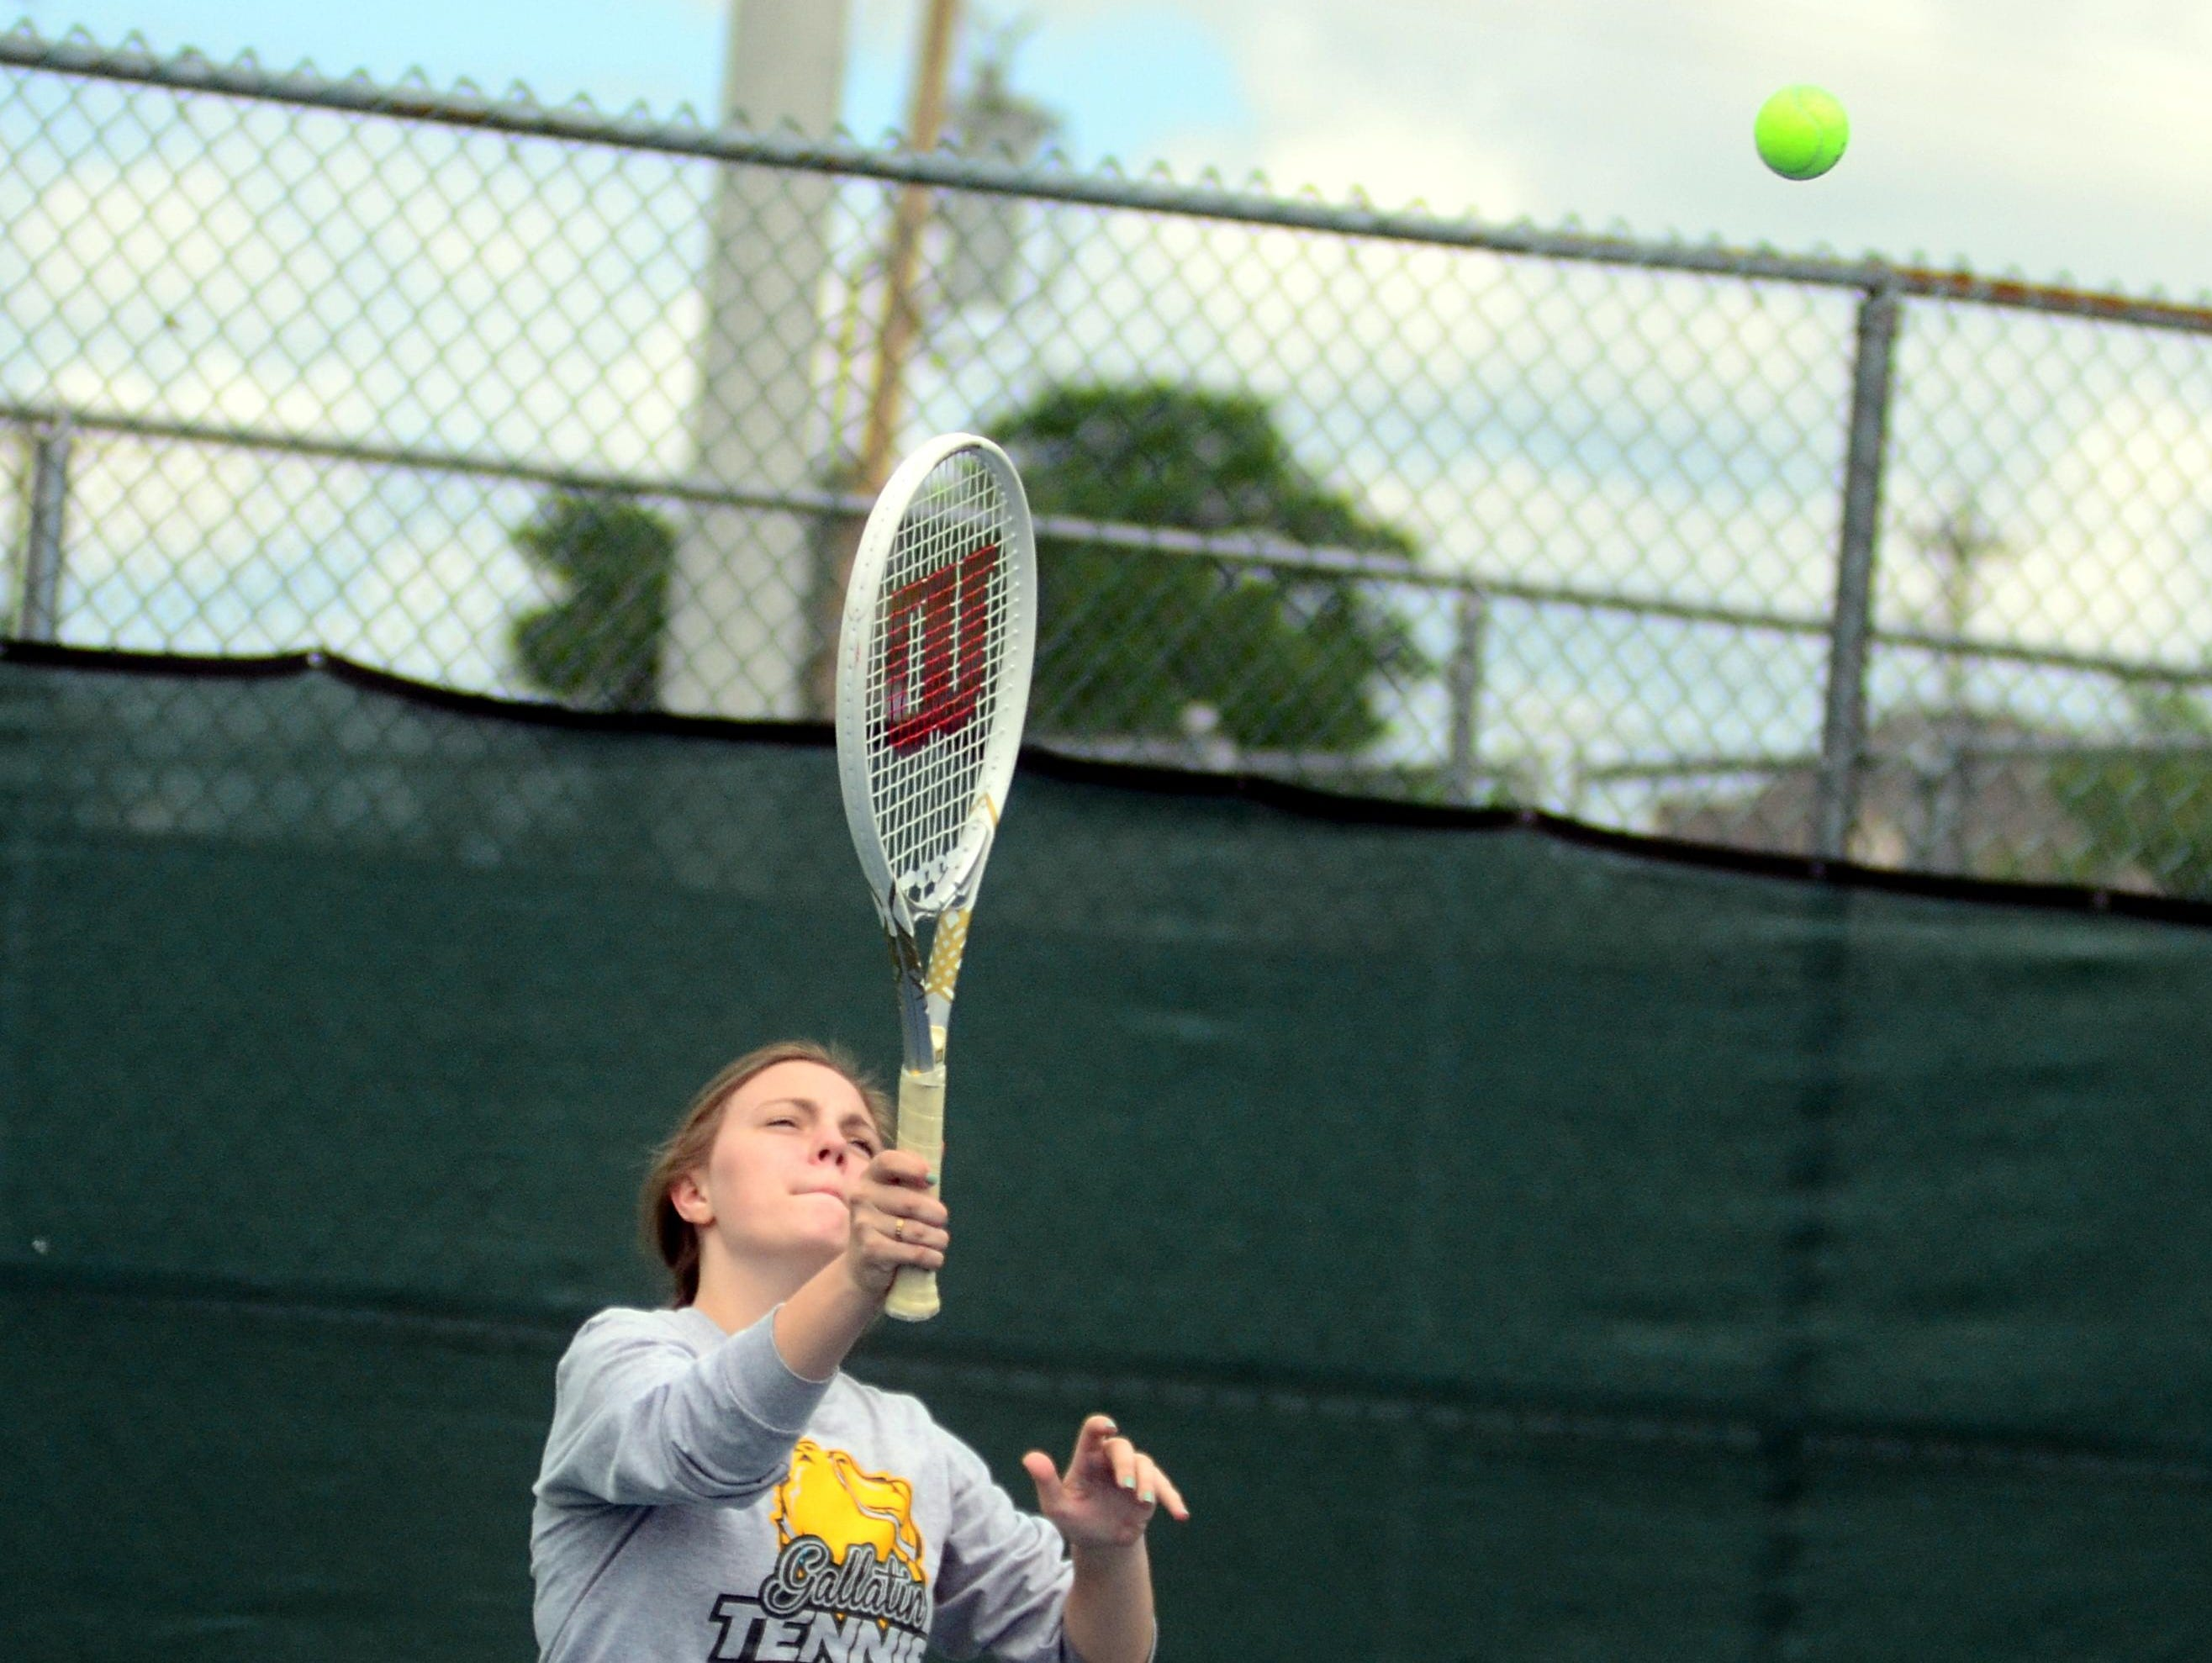 Gallatin High junior Lydia Russell serves during Tuesday's District 9-AAA Individual Tennis Tournament. Russell and classmate Bailey DePasqualie suffered a straight-set loss in the first round.